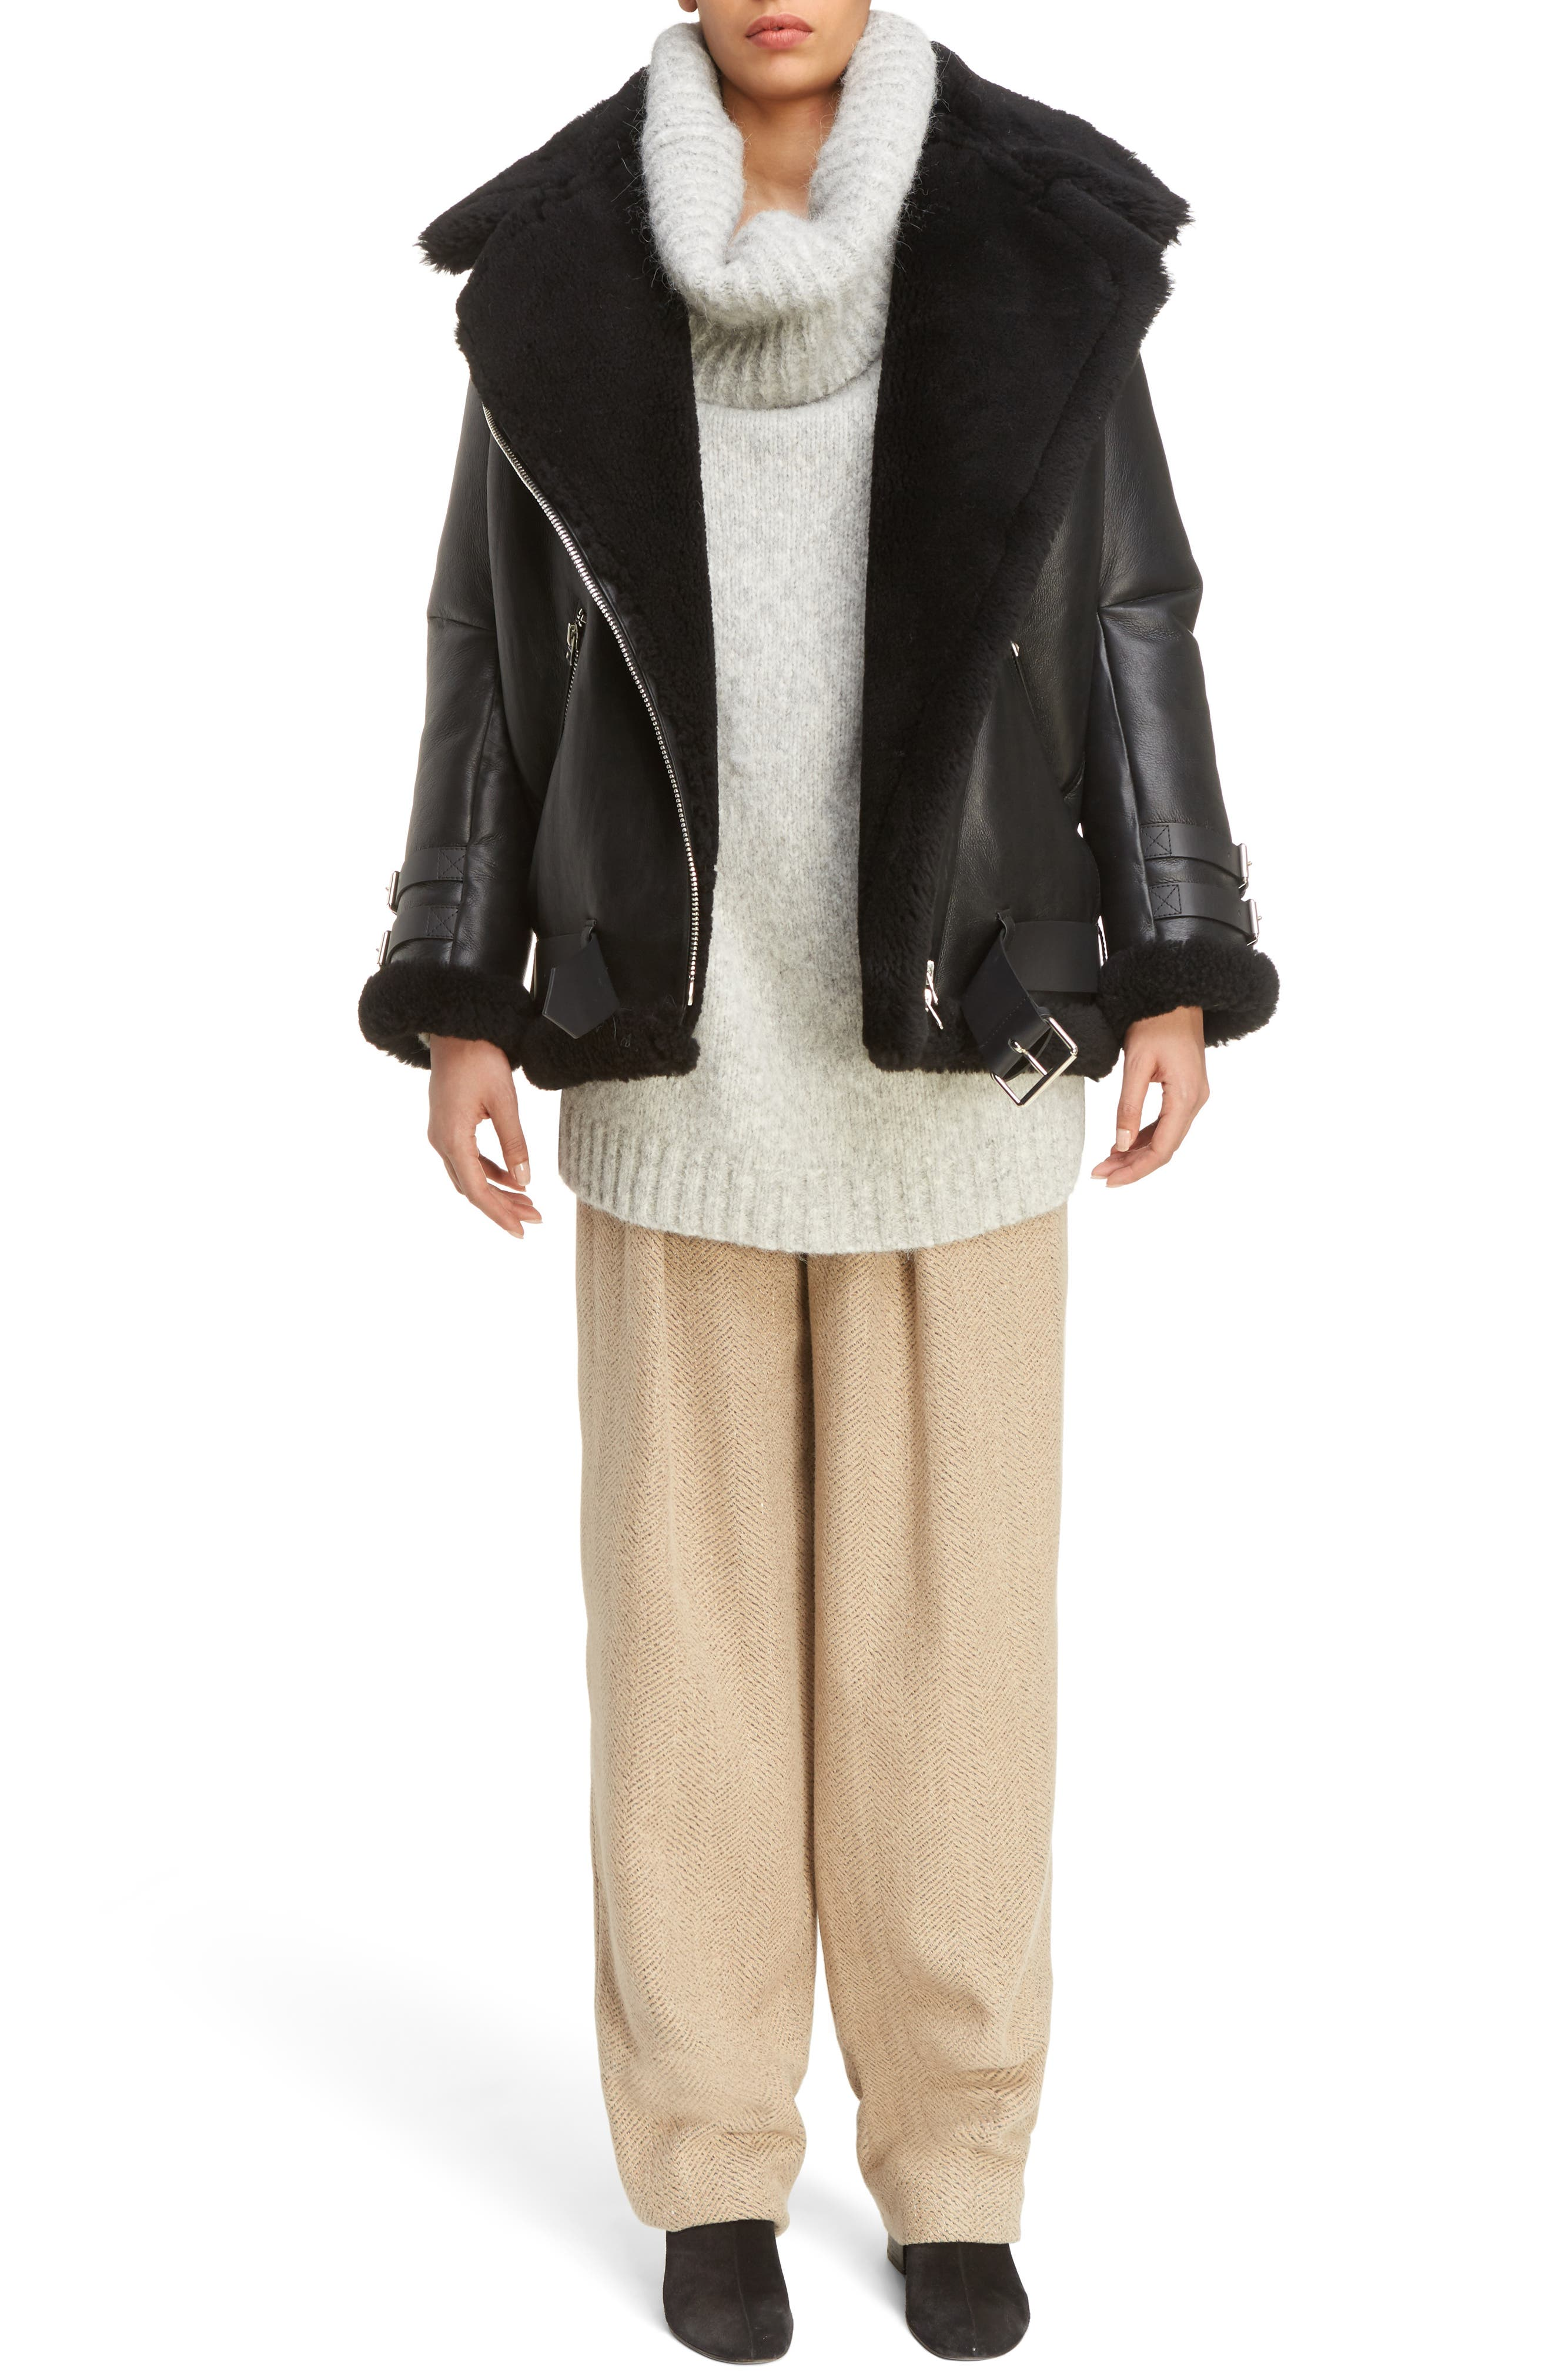 Shearling Coats & Jackets for Women | Nordstrom | Nordstrom